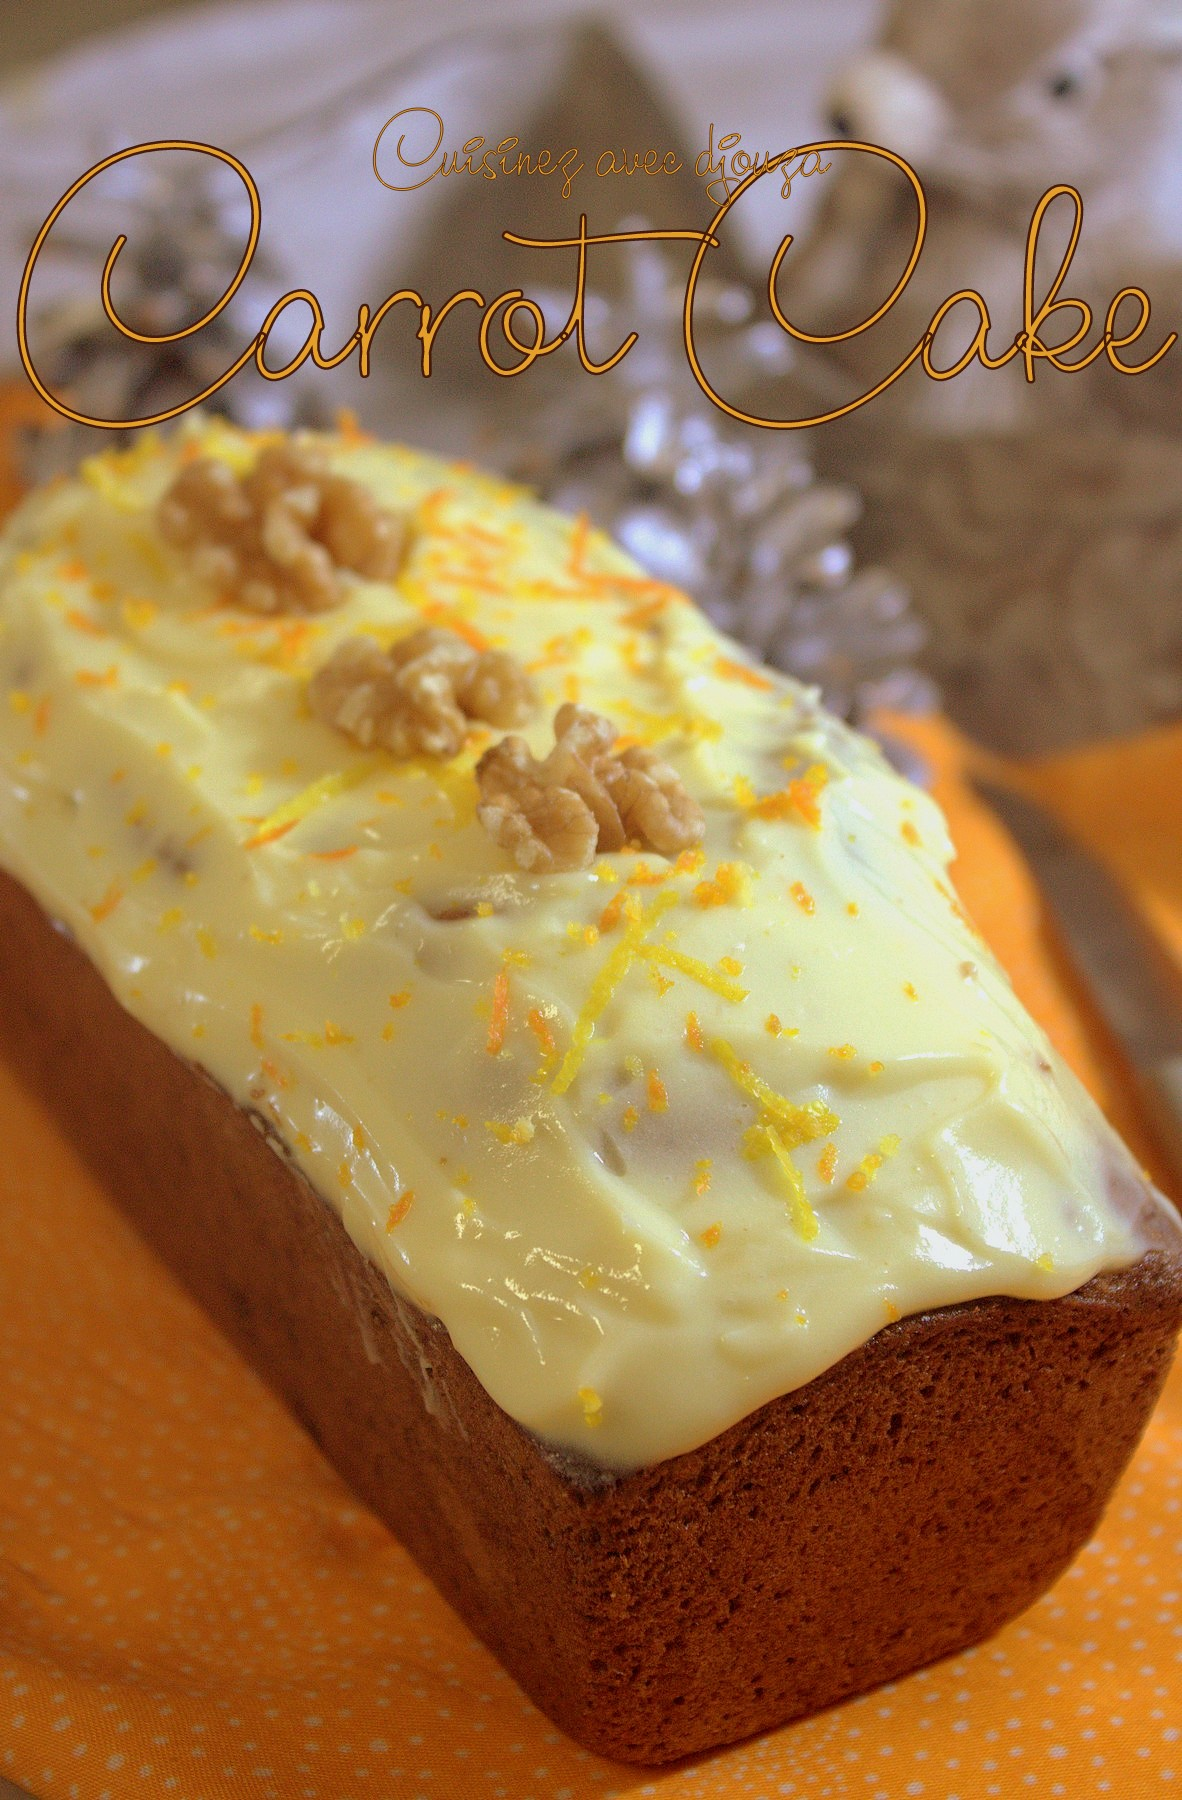 le carrot cake gateau aux carottes facile recettes faciles recettes rapides de djouza. Black Bedroom Furniture Sets. Home Design Ideas